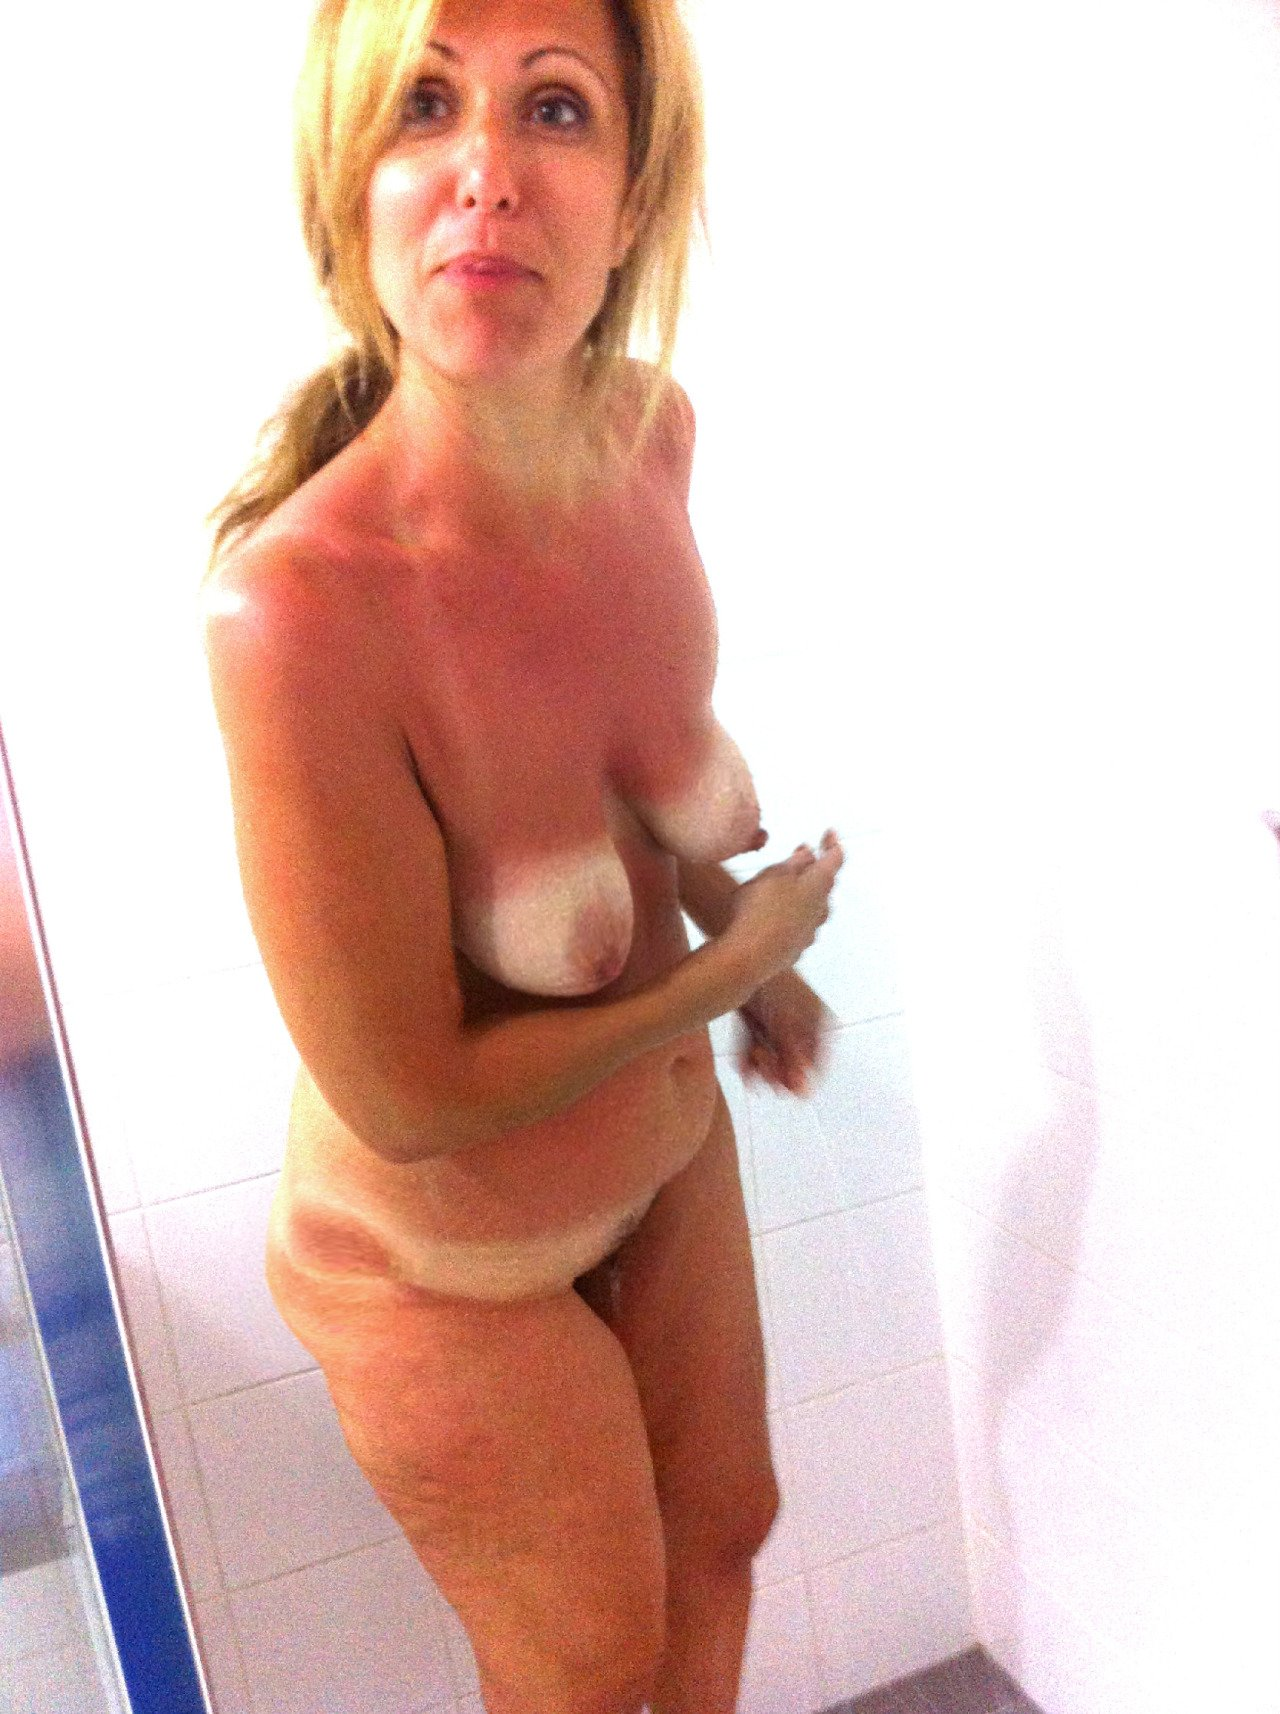 Russian xxx video free download Vintage scamp trailers sale